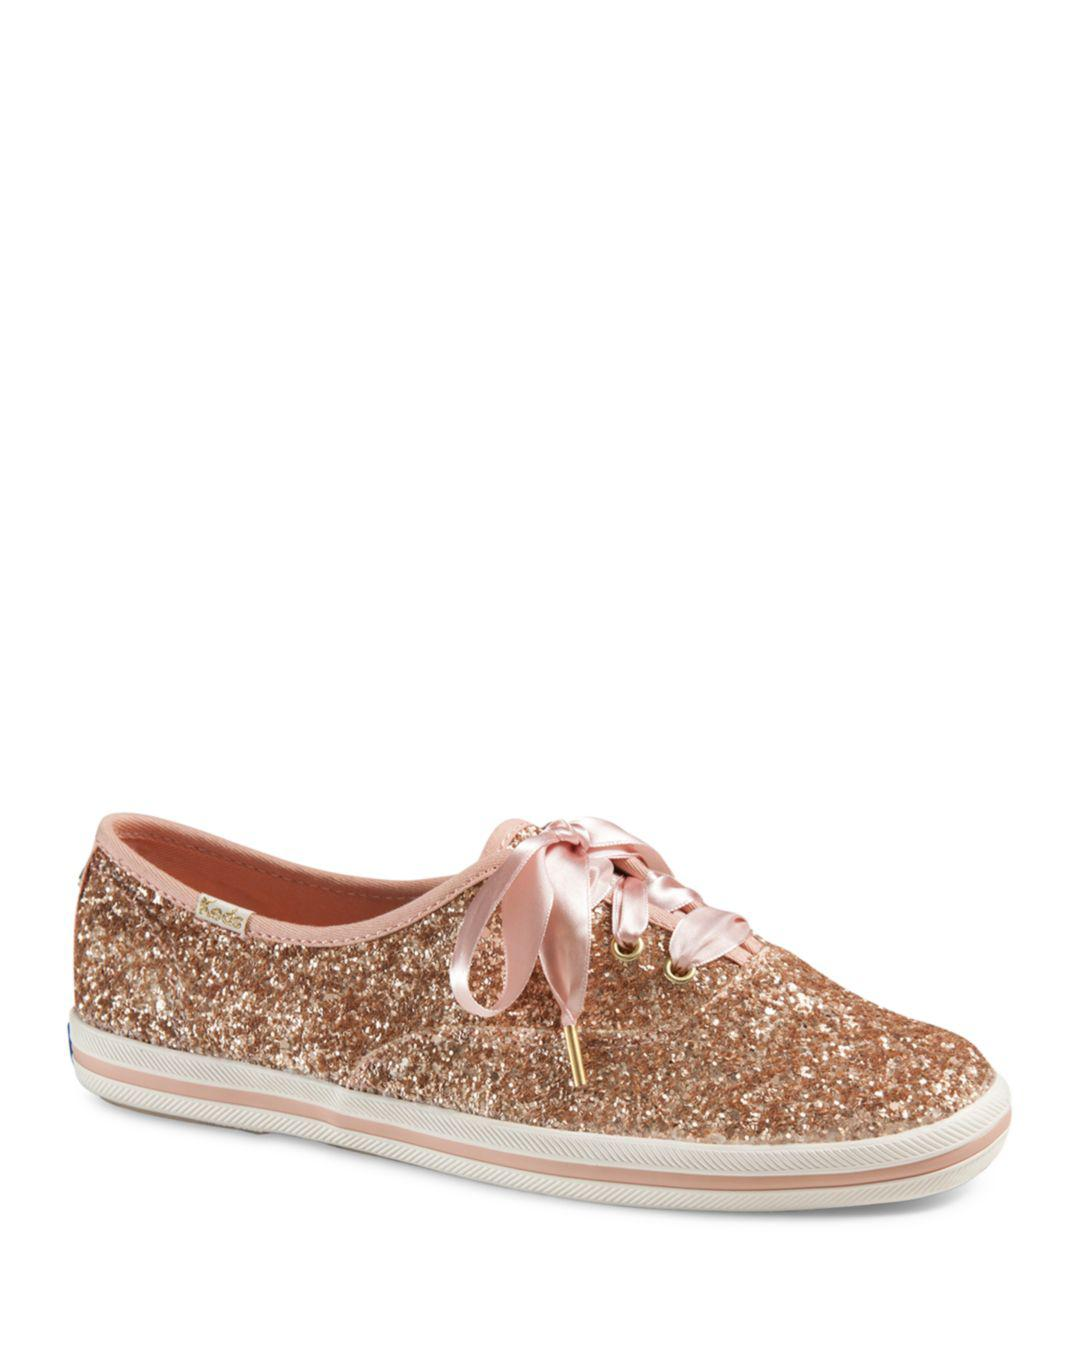 381f04bb11 Lyst - Keds X Kate Spade New York Women s Glitter Lace Up Sneakers